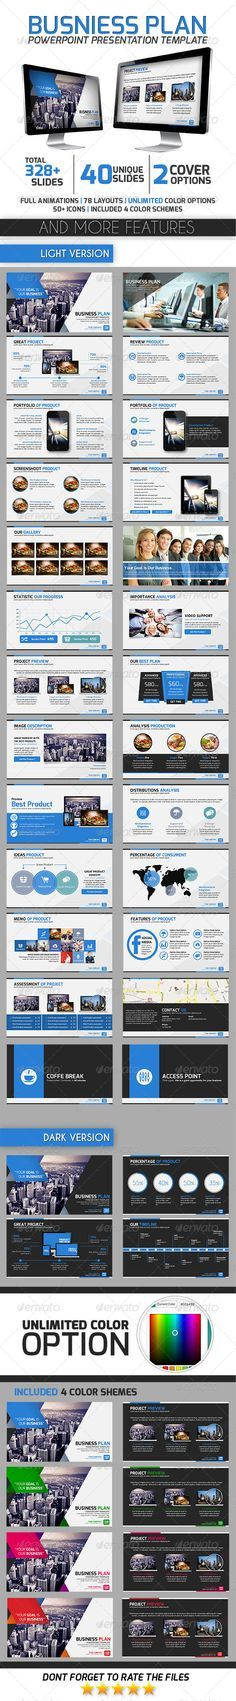 The  Best Business Plan Presentation Ideas On